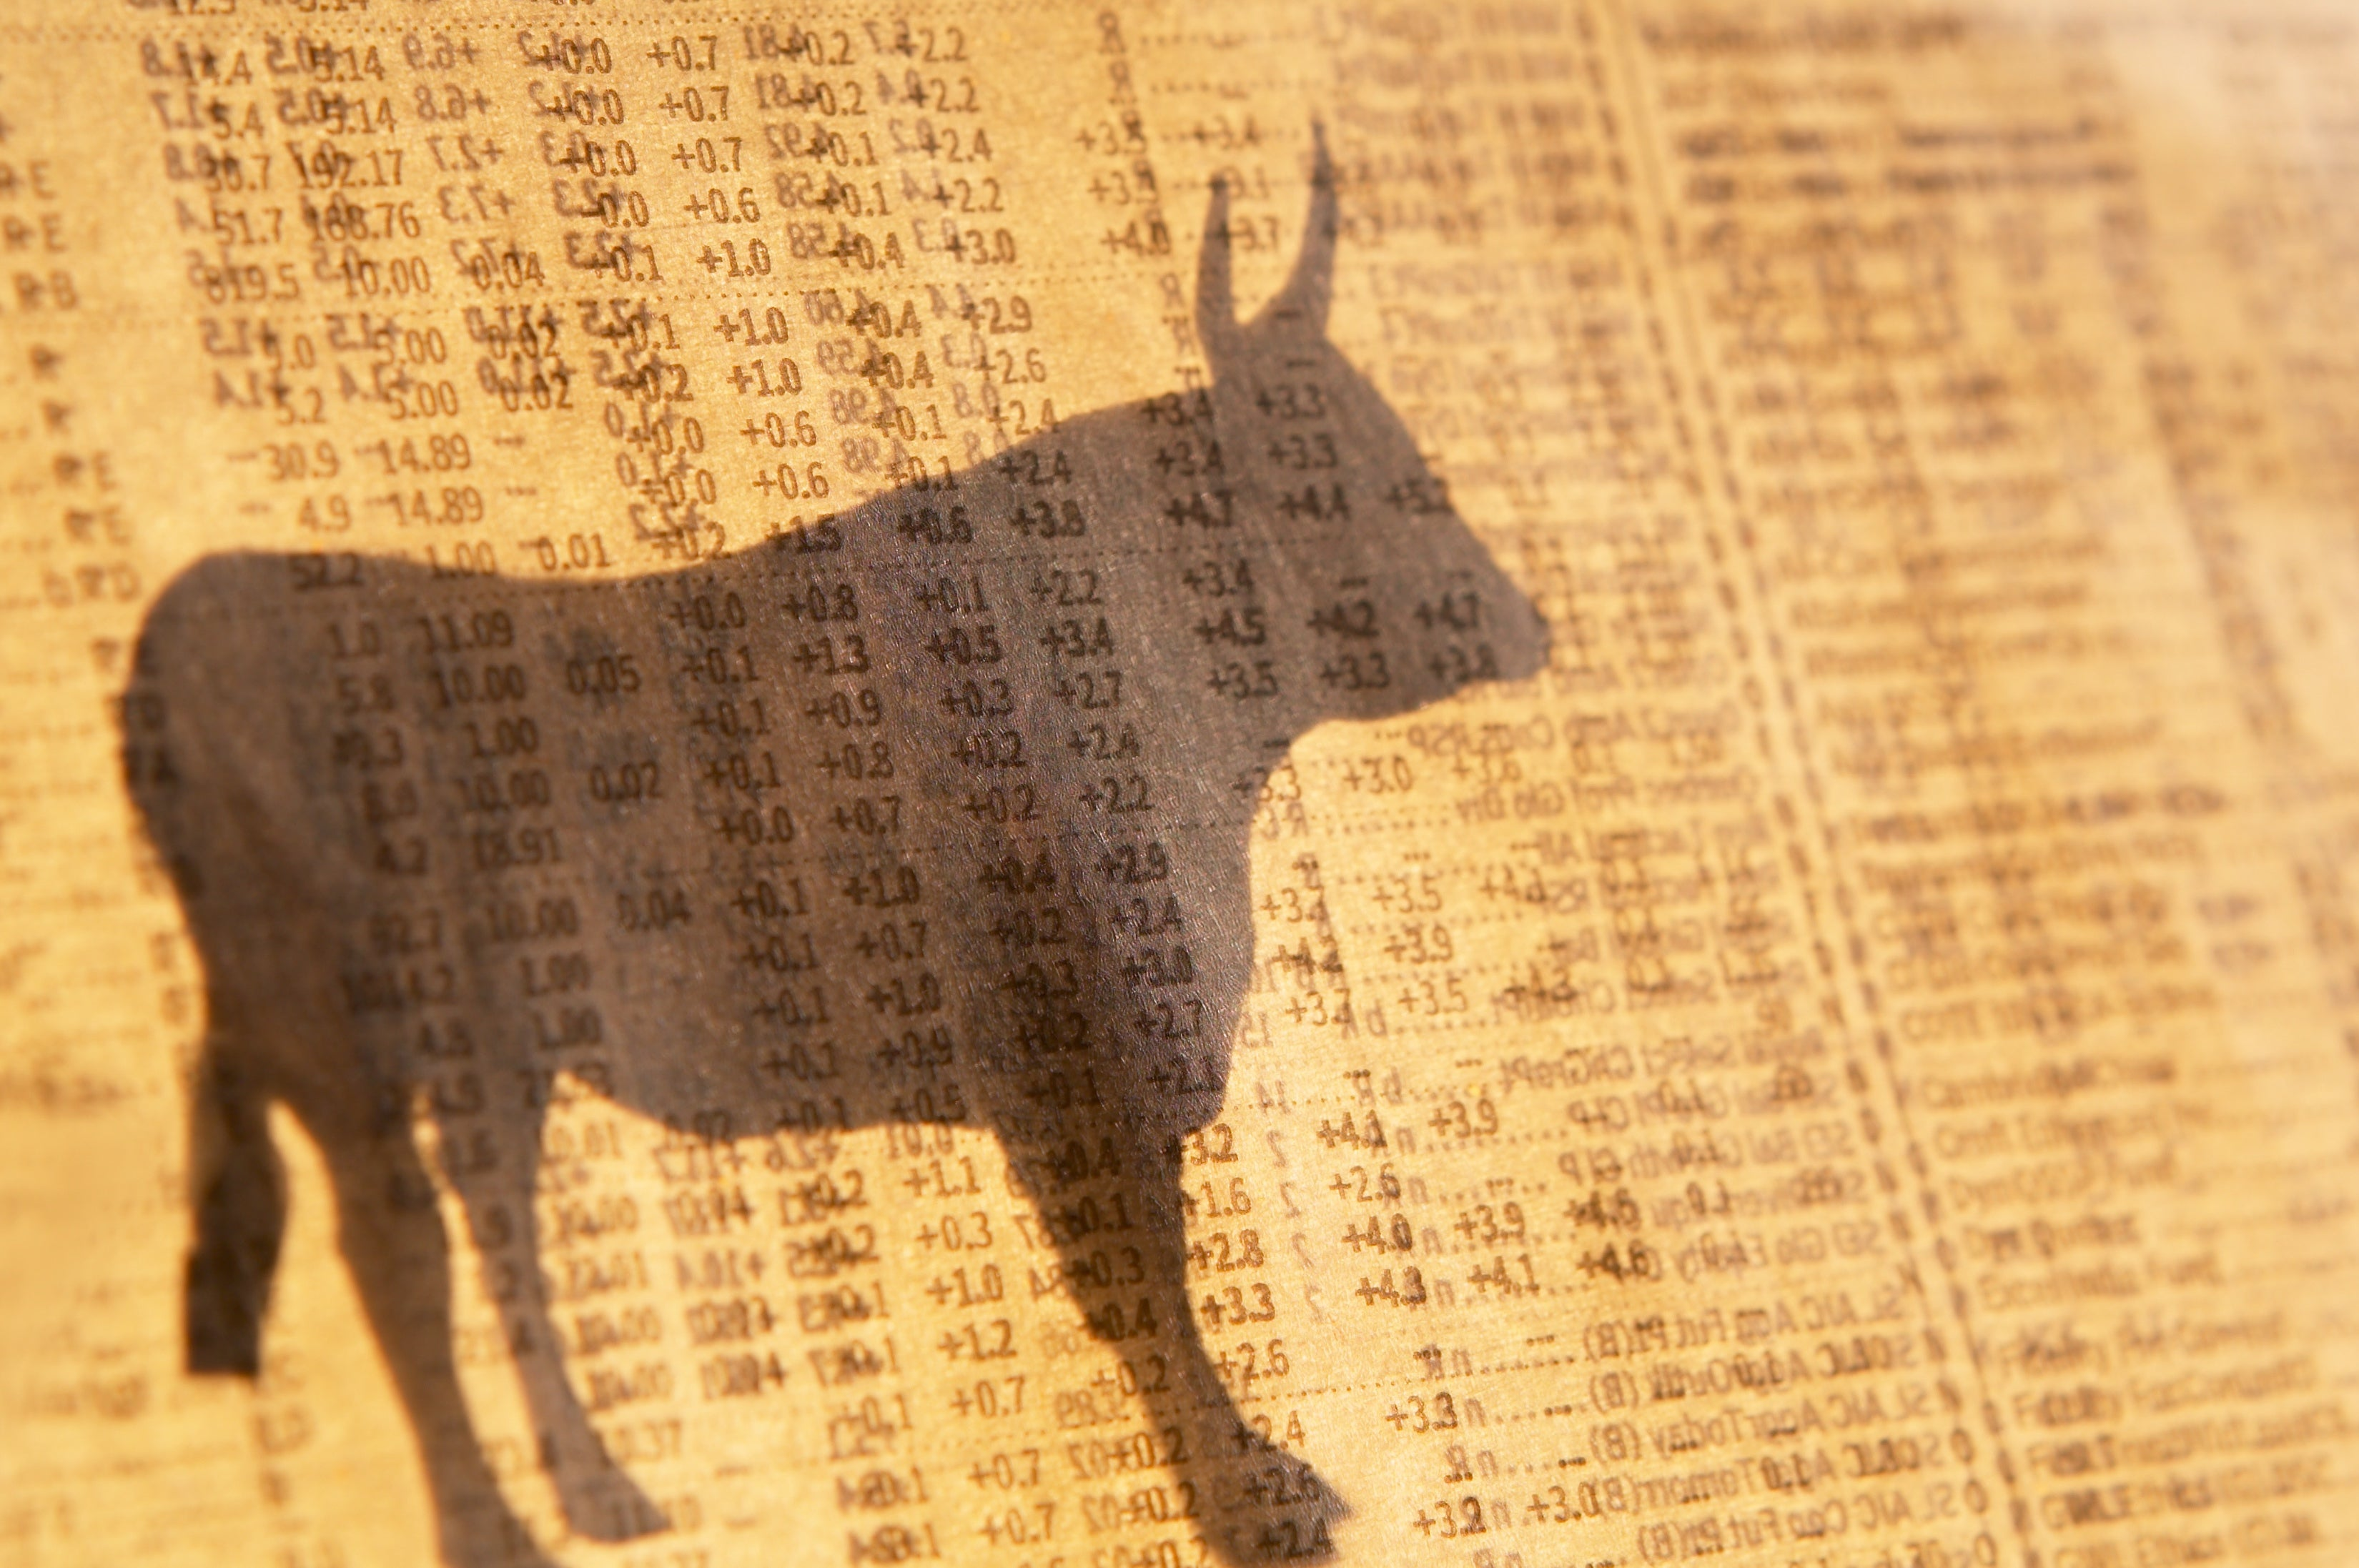 Shadow of a stock market bull over a background of stock prices